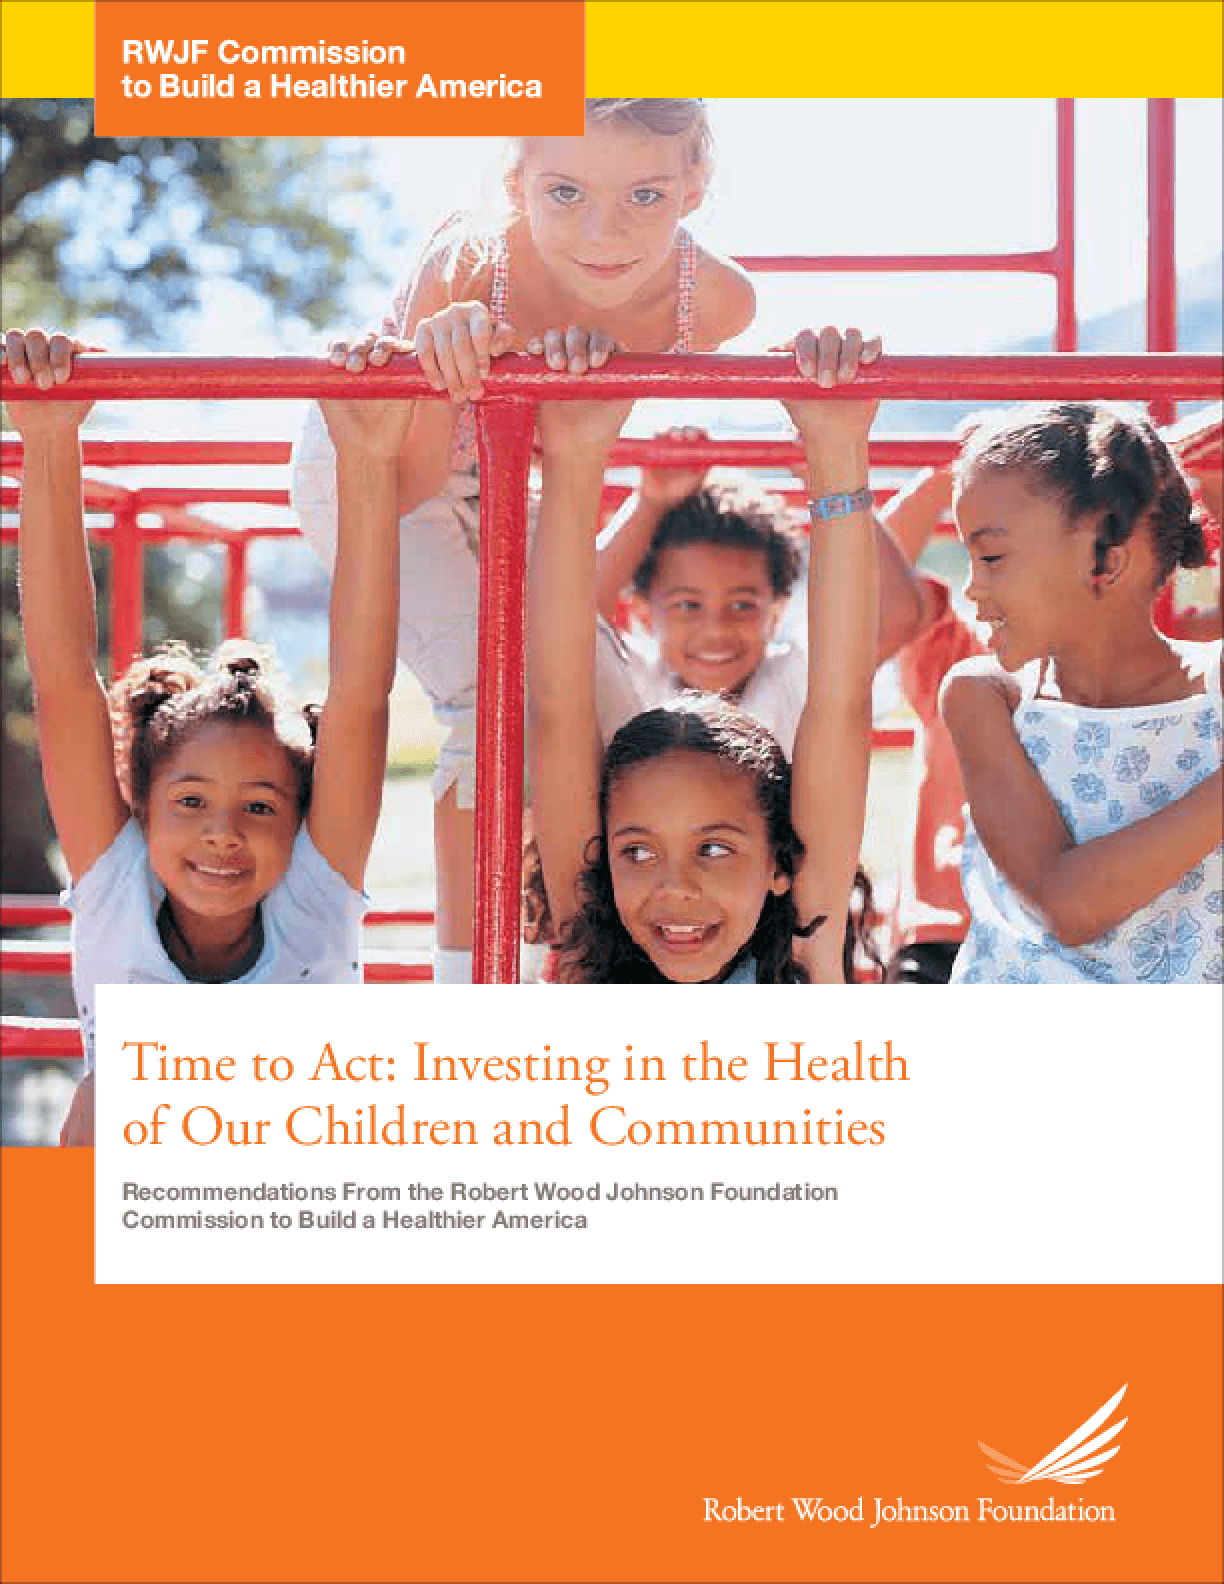 Time to Act: Investing in the Health of Our Children and Communities